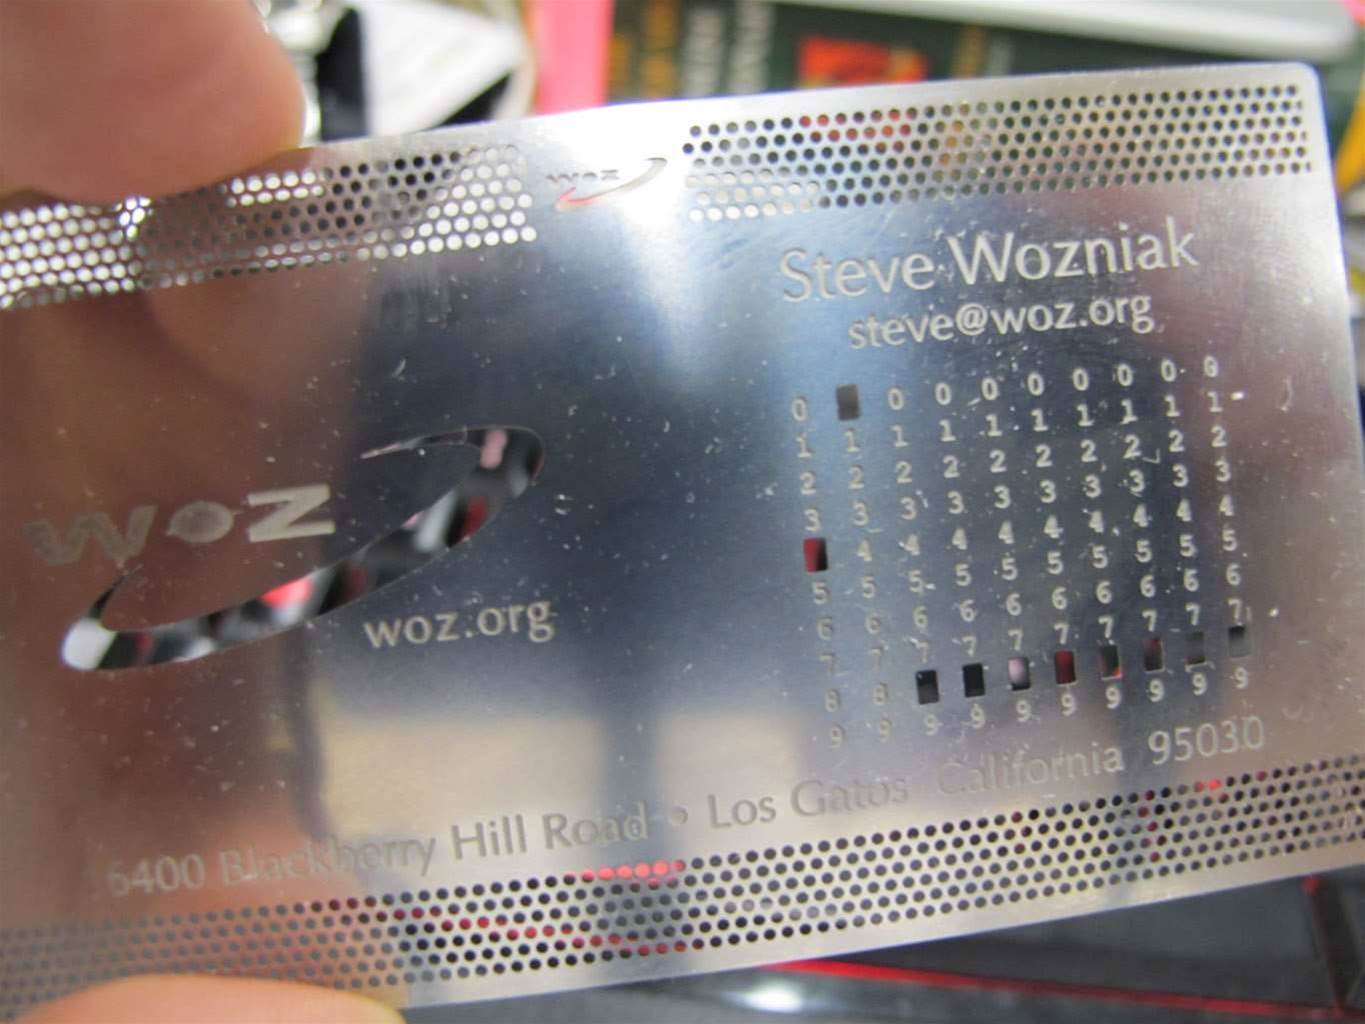 Steve Wozniak's business card is cooler than... anyone's